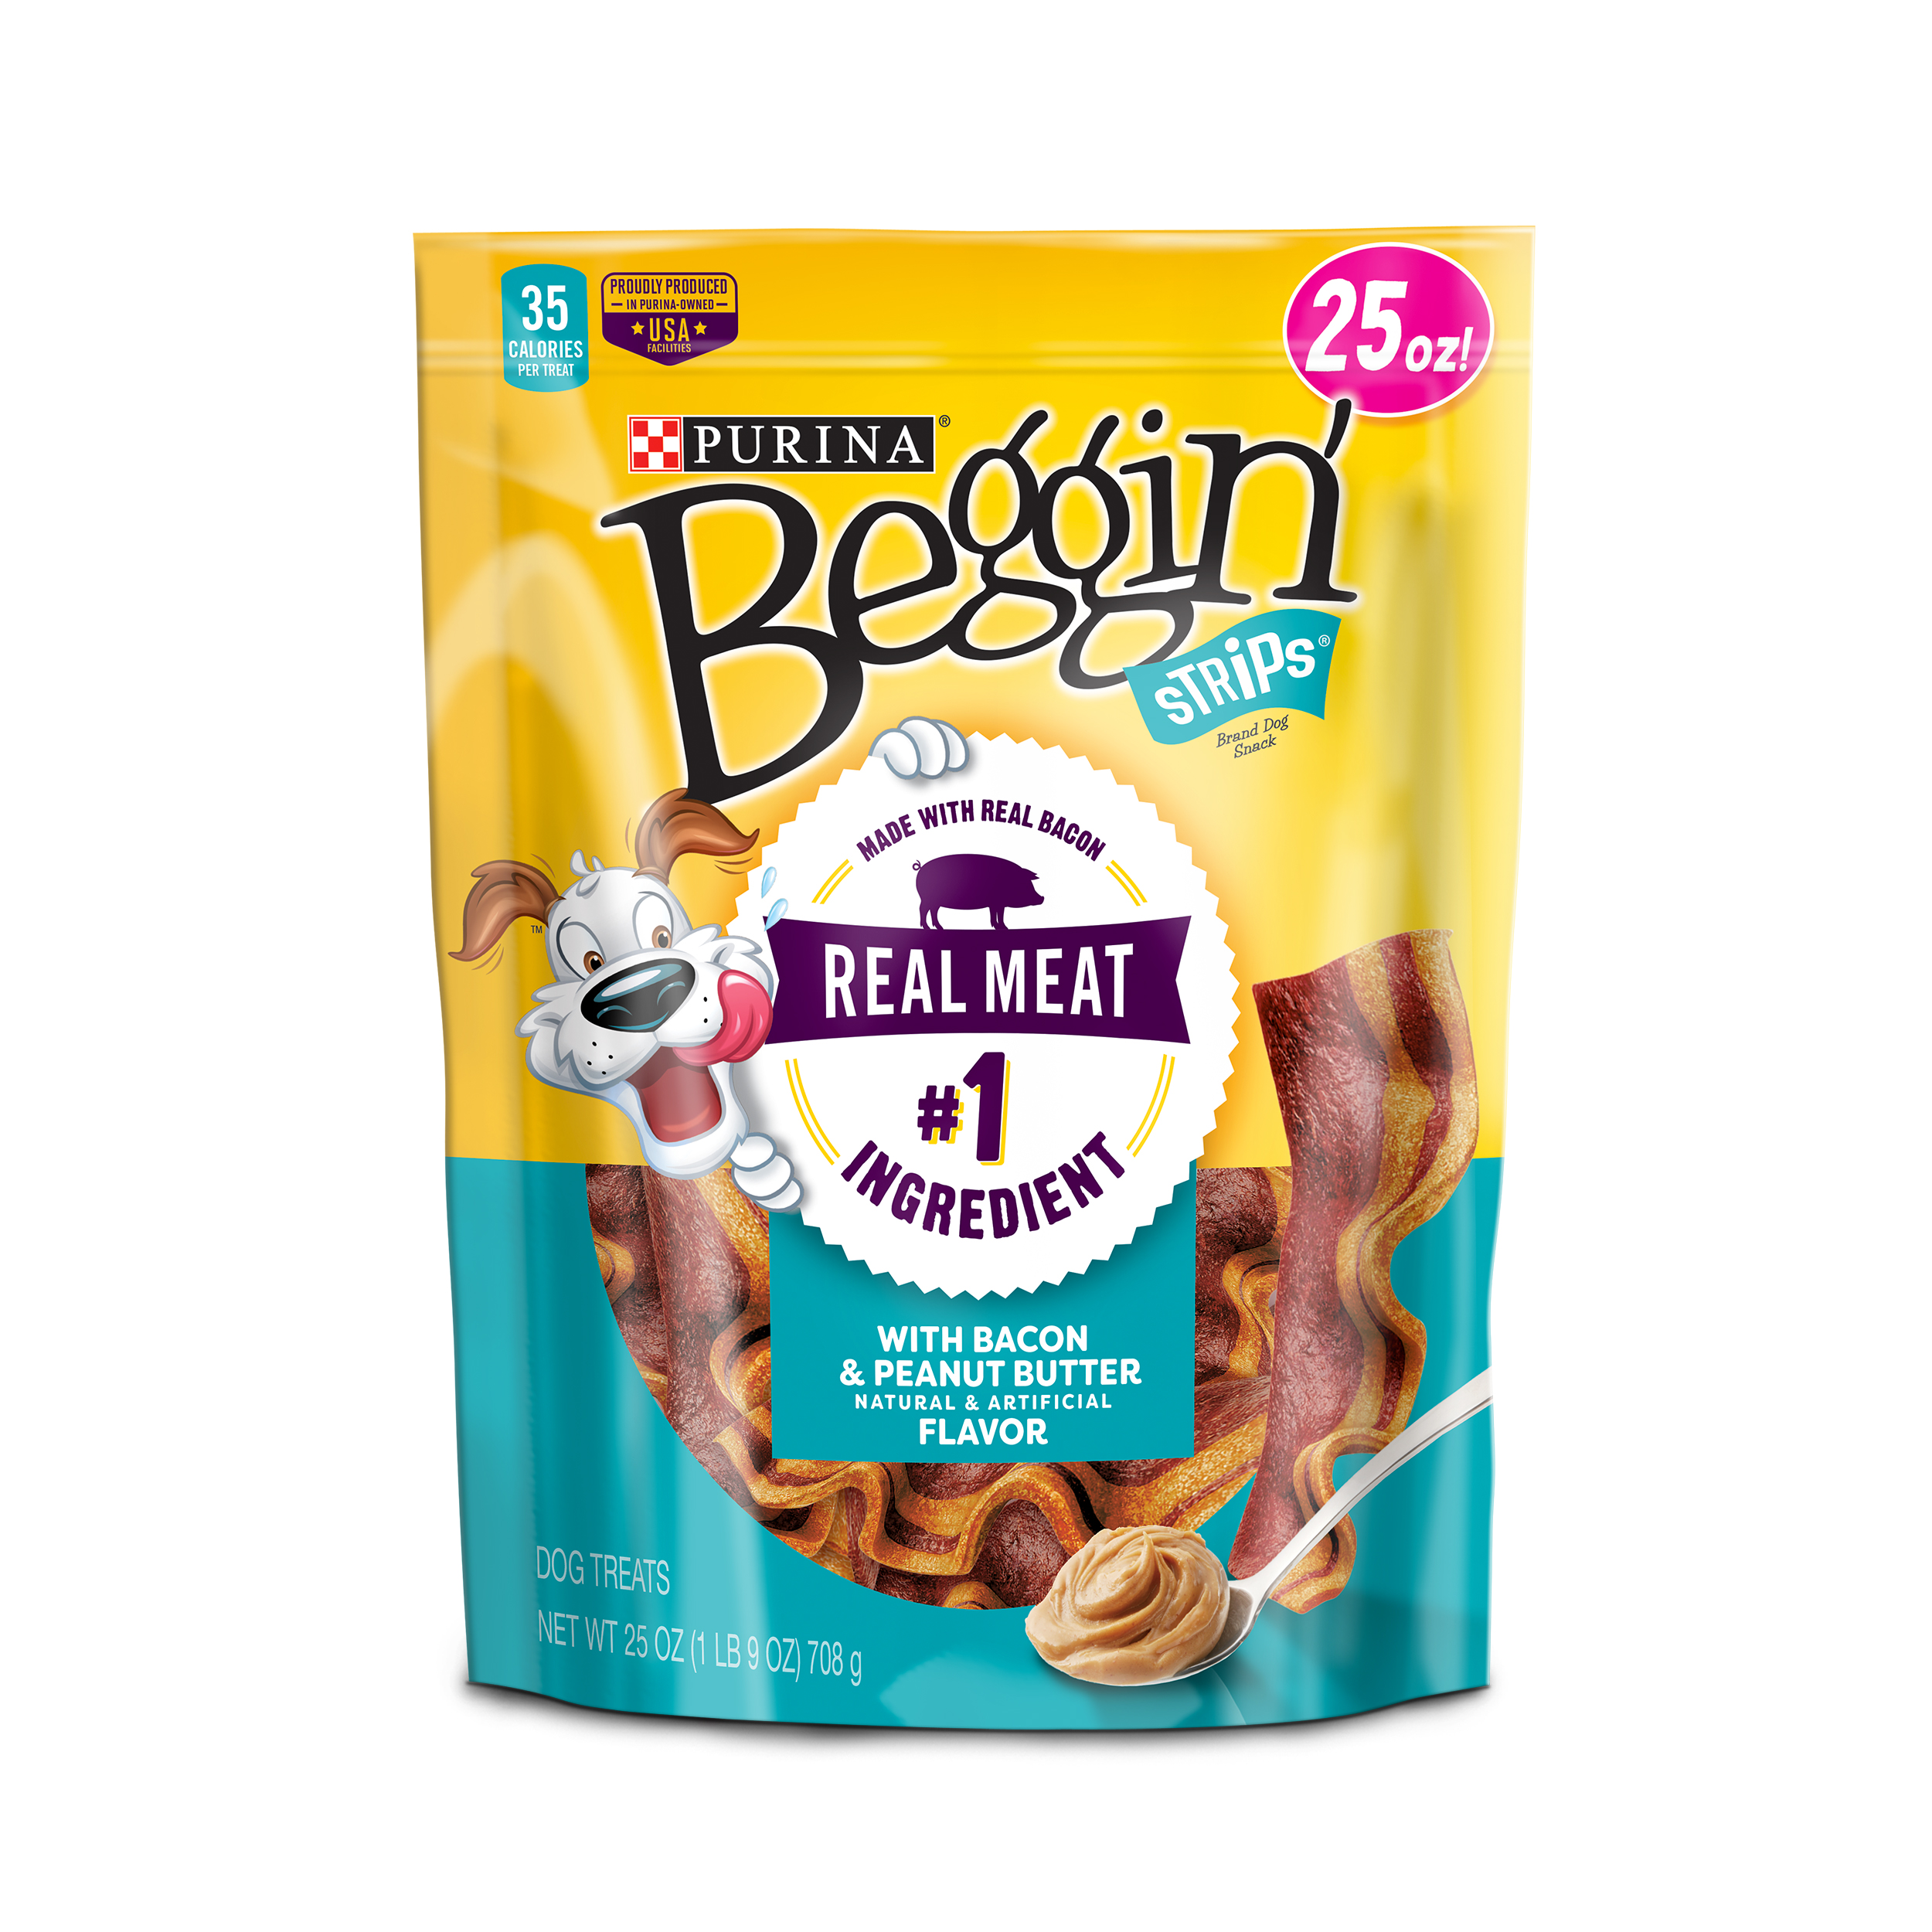 Purina Beggin' Strips Bacon & Peanut Butter Flavor Dog Treats - 25 oz. Pouch